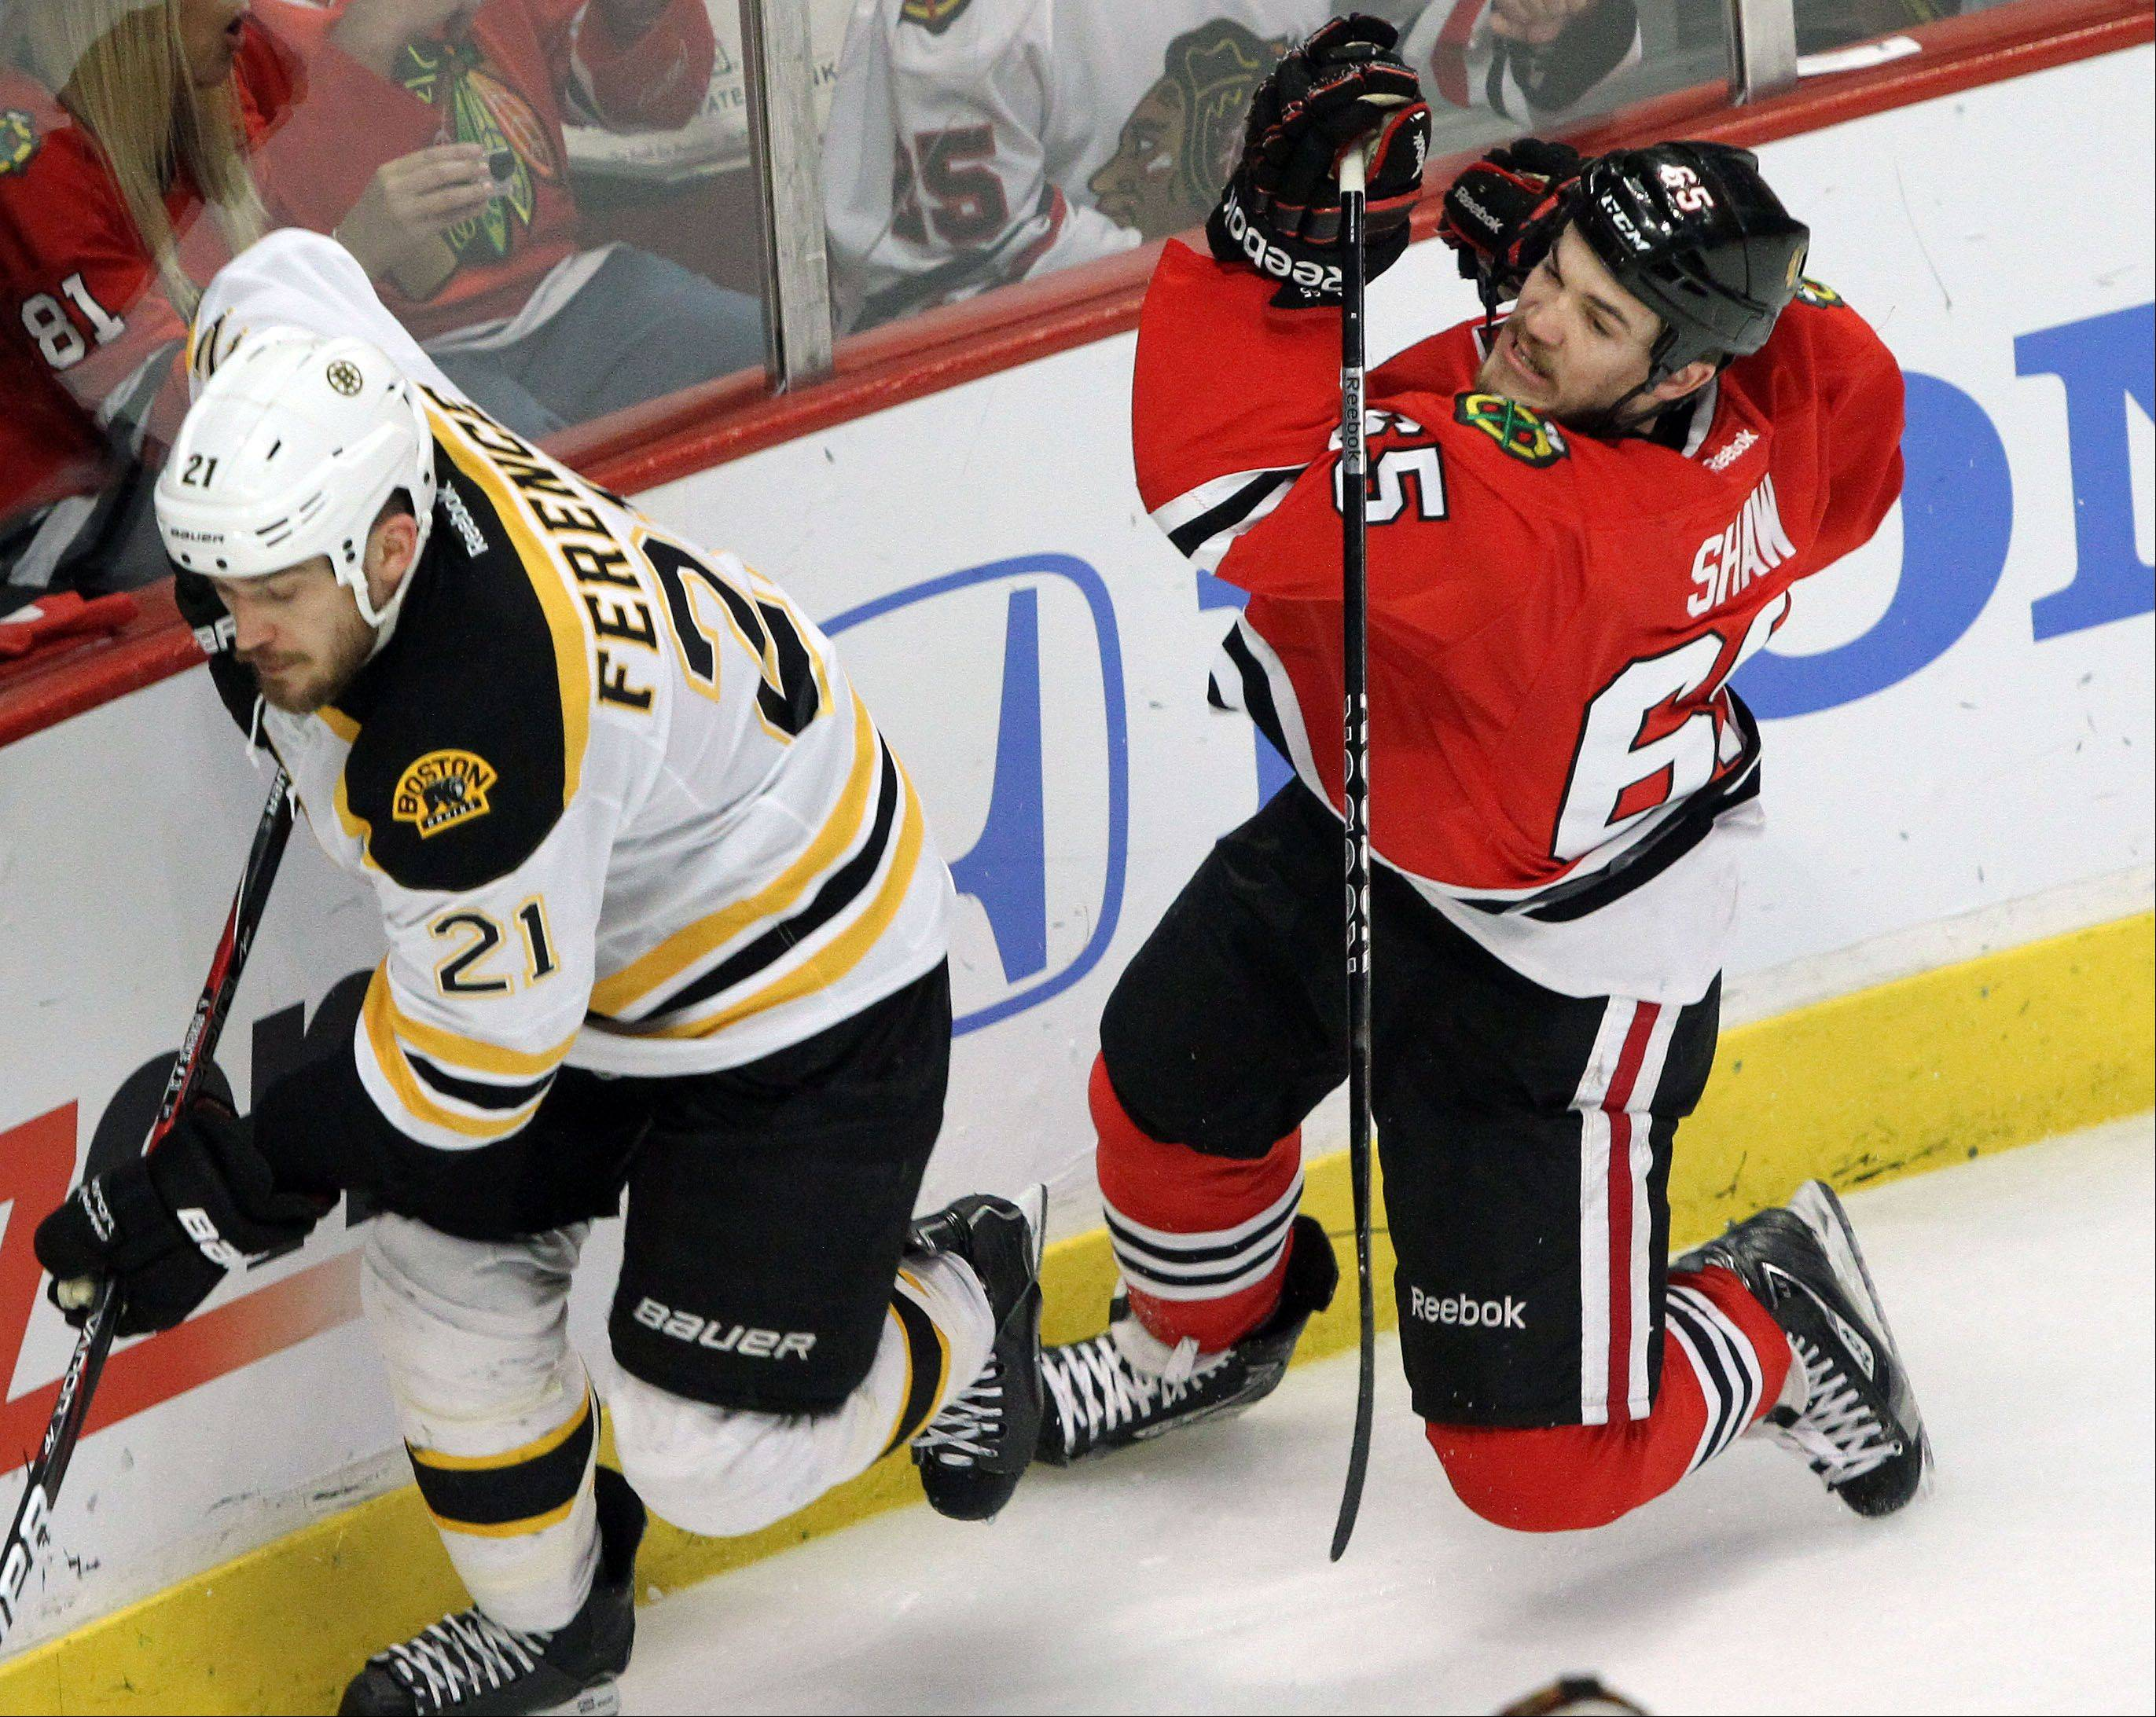 Chicago Blackhawks center Andrew Shaw collides with Boston Bruins defenseman Andrew Ference during game 2 of the Stanley Cup Finals against the Boston Bruins at the United Center in Chicago Saturday.